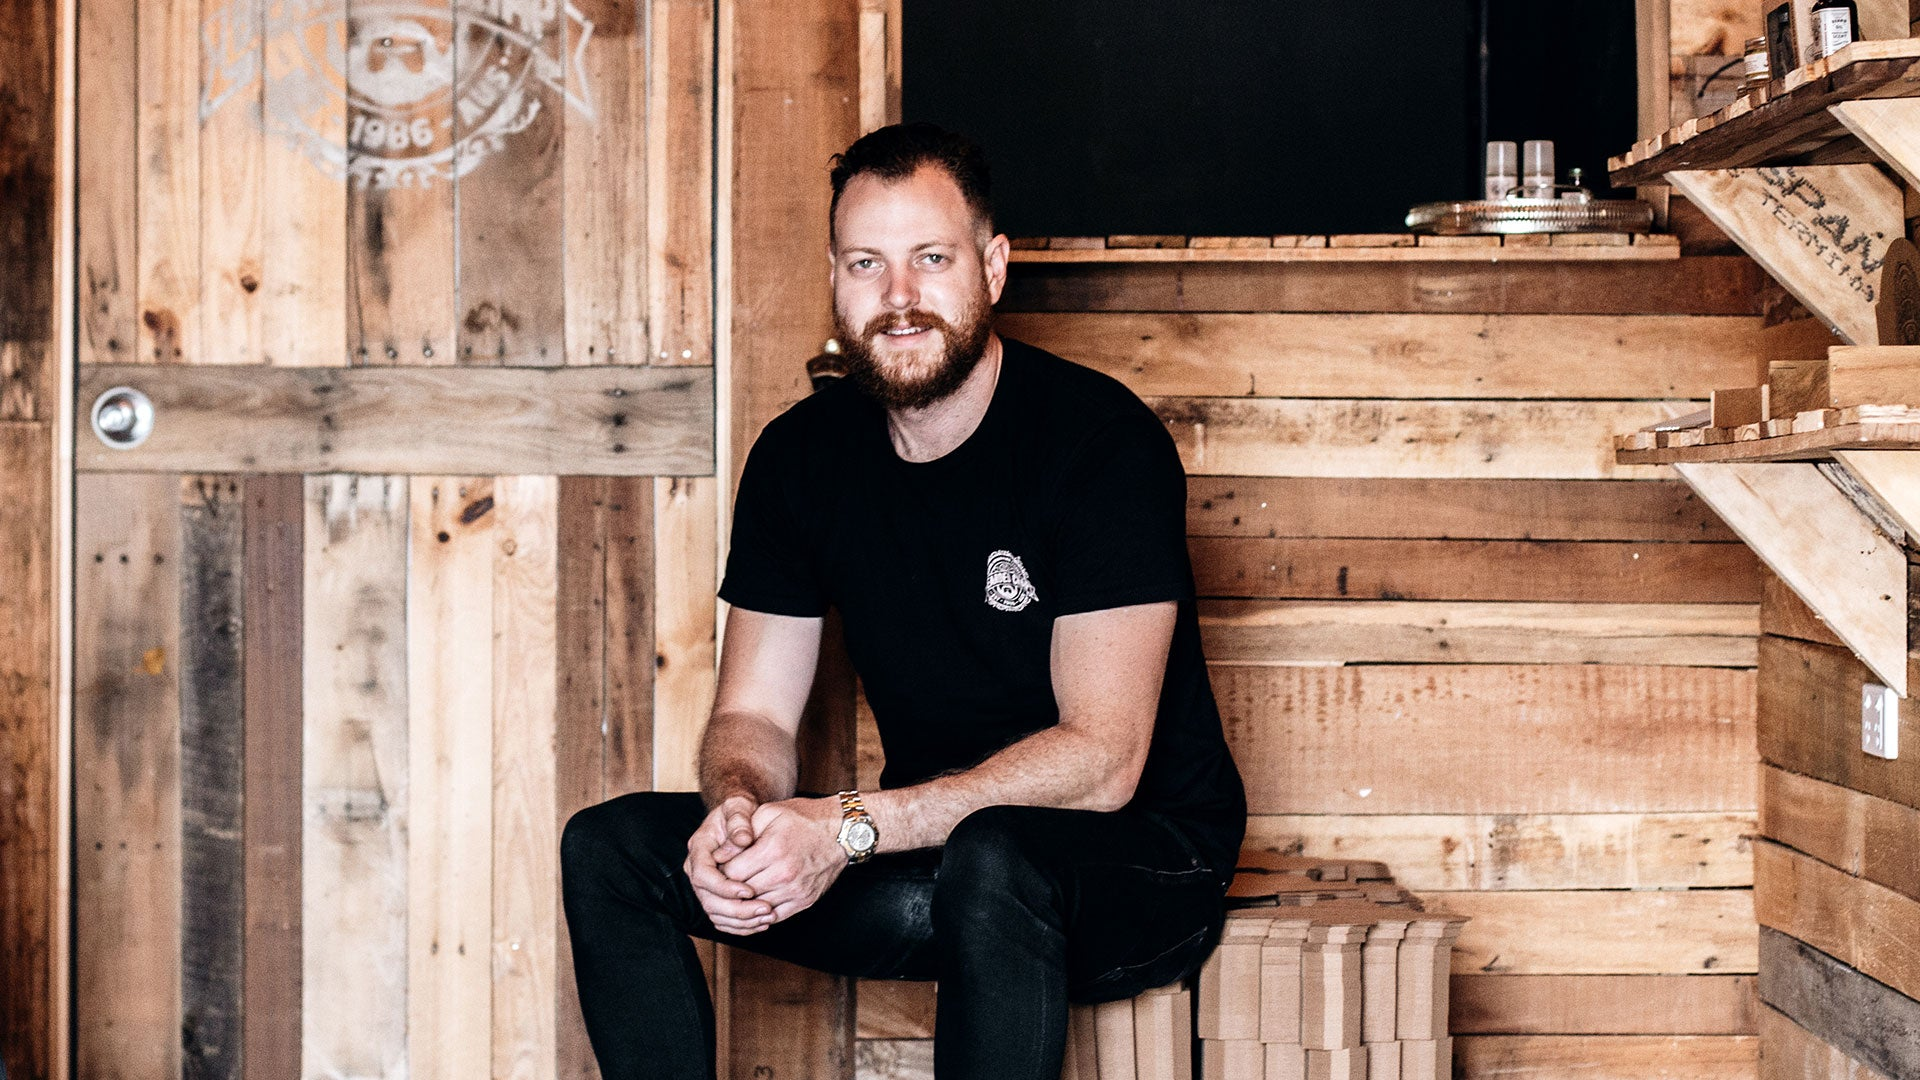 The Bearded Chap - Interview with the CEO & Founder Luke Swenson